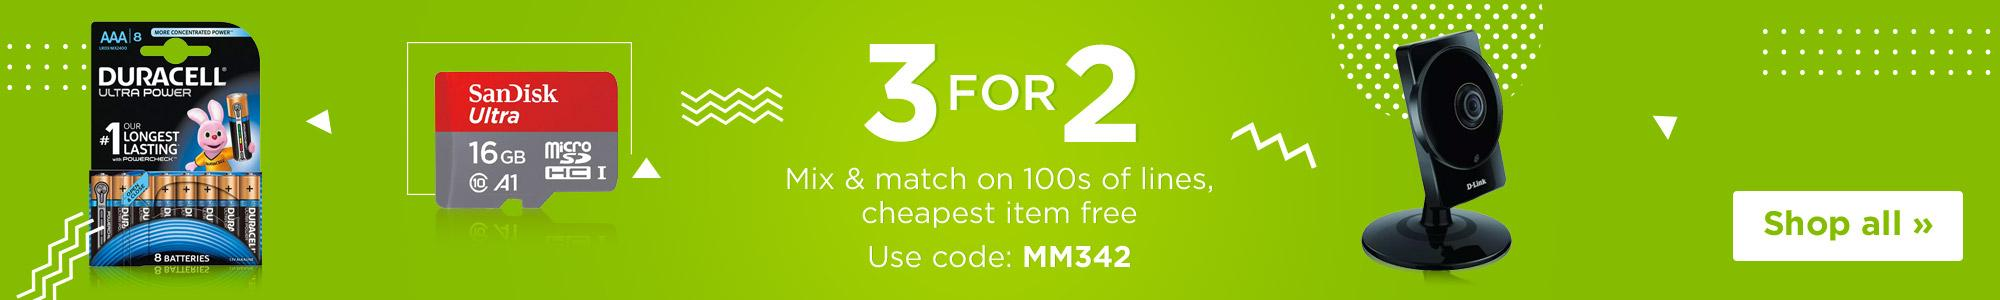 3 For 2 with code MM342